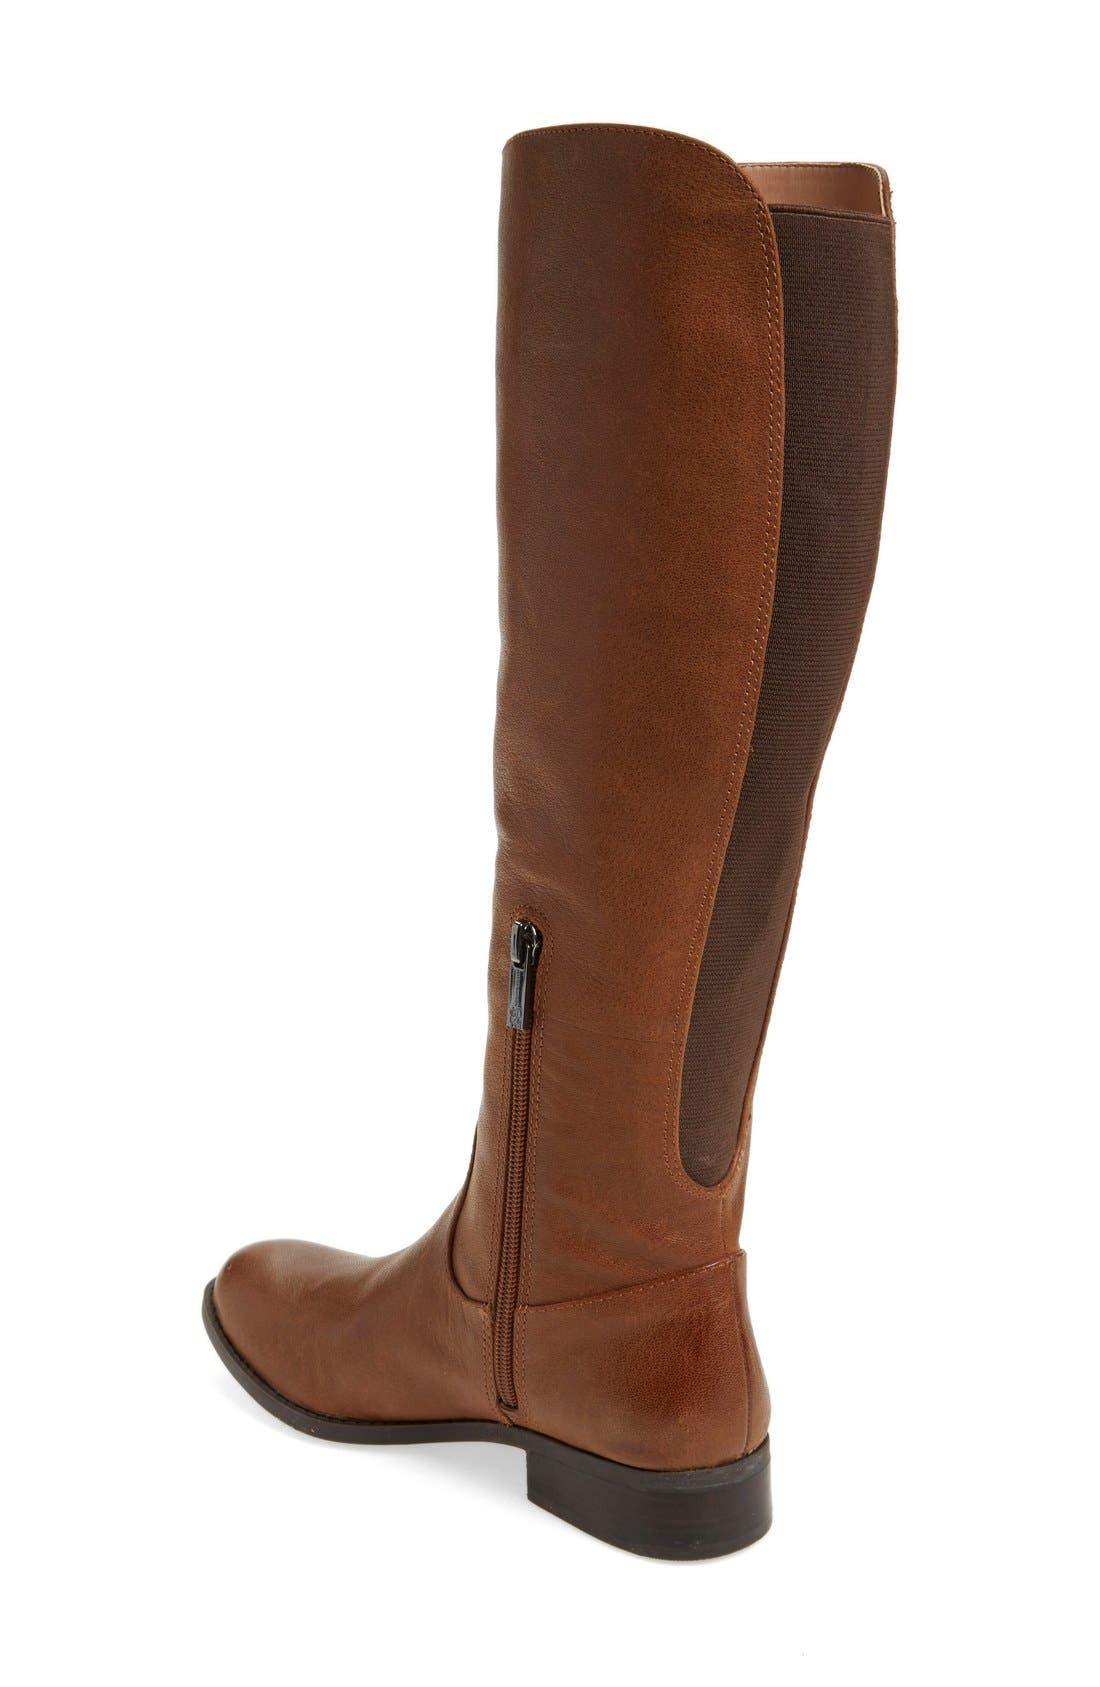 Alternate Image 2  - Jessica Simpson 'Ressie' Riding Boot (Women)